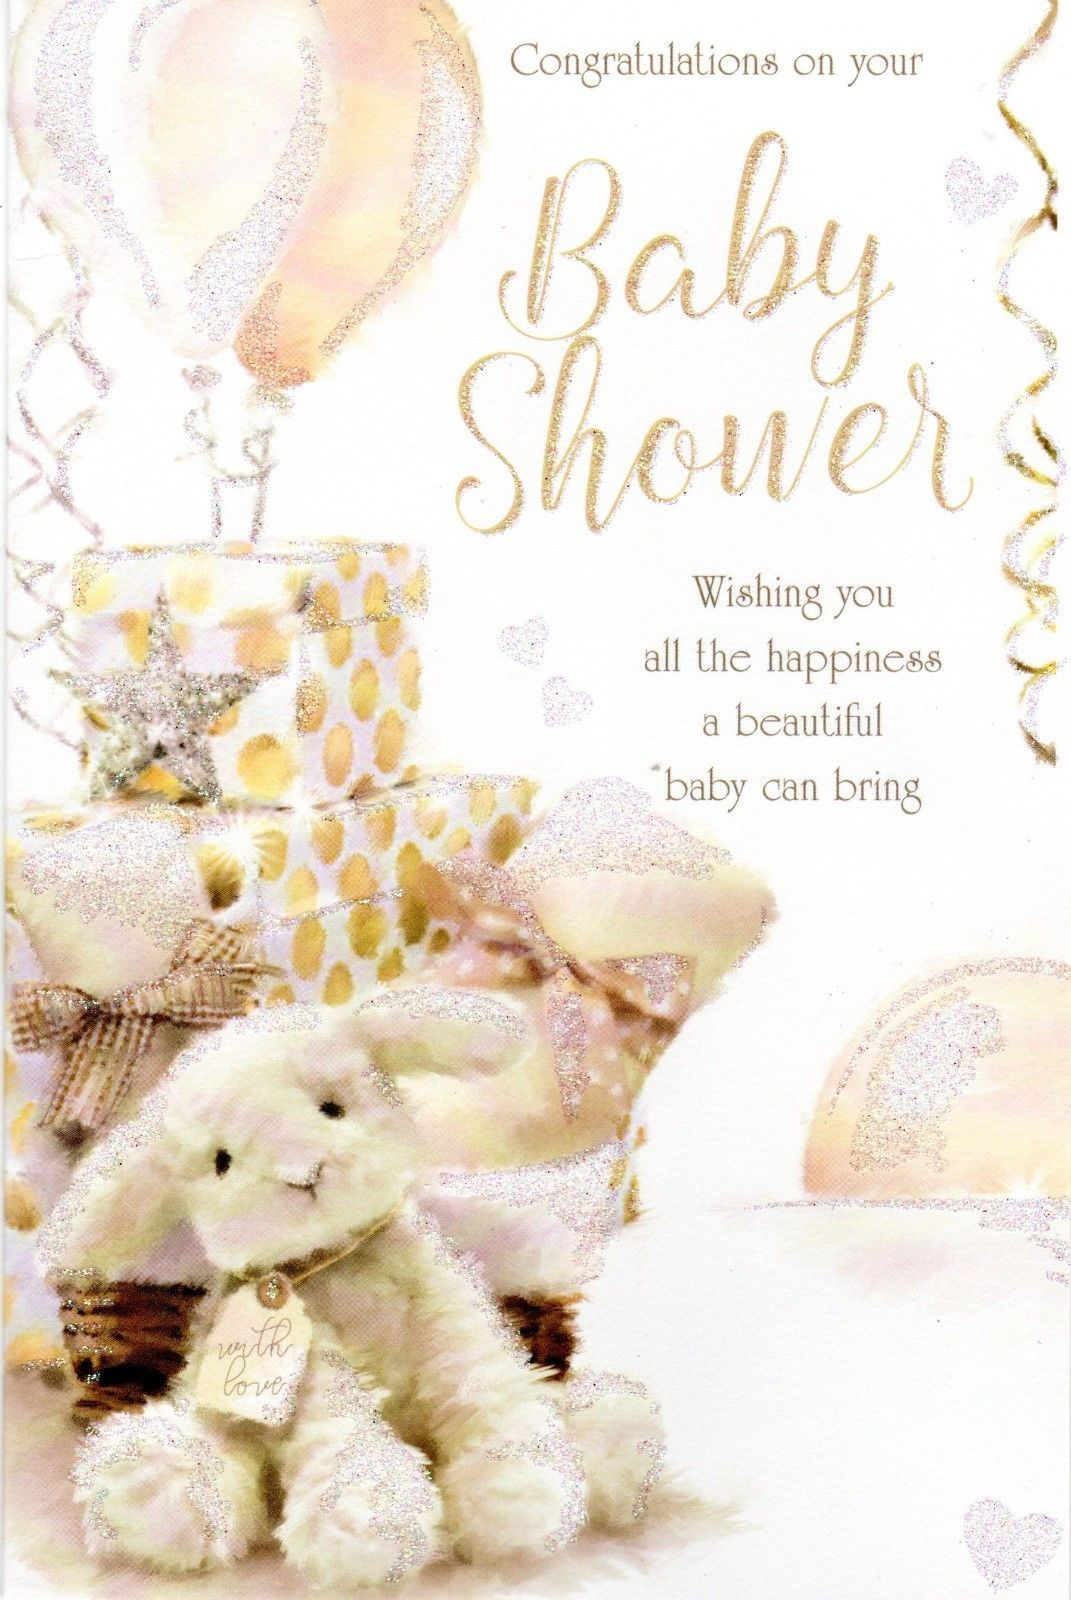 Congratulations On Your Baby Shower - Card